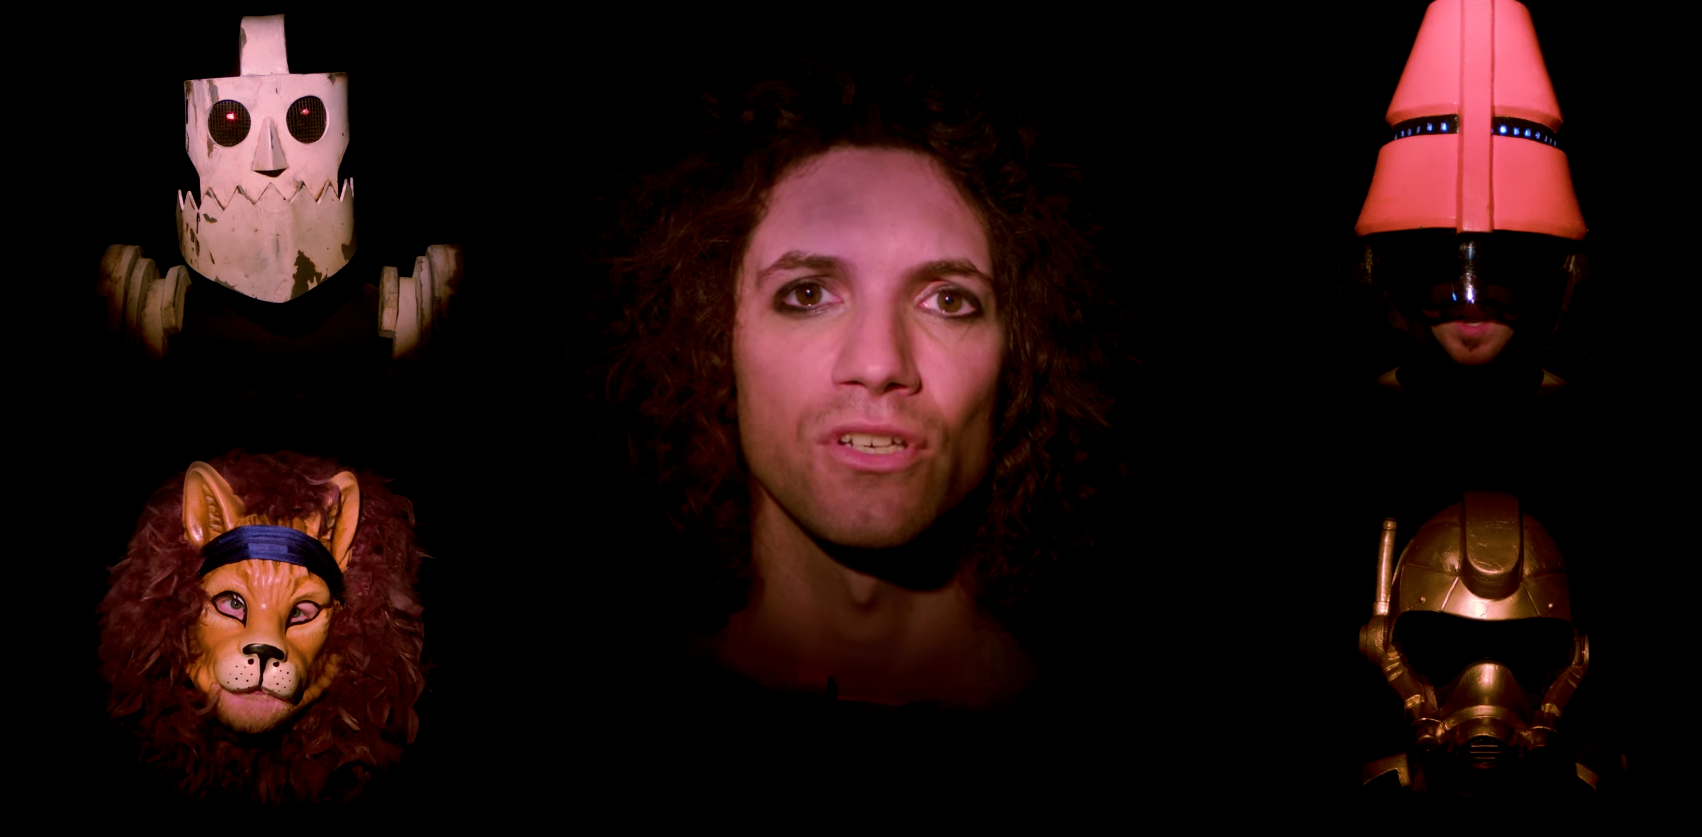 Screen capped a desktop background from Danny Dont You Know to 1702x837